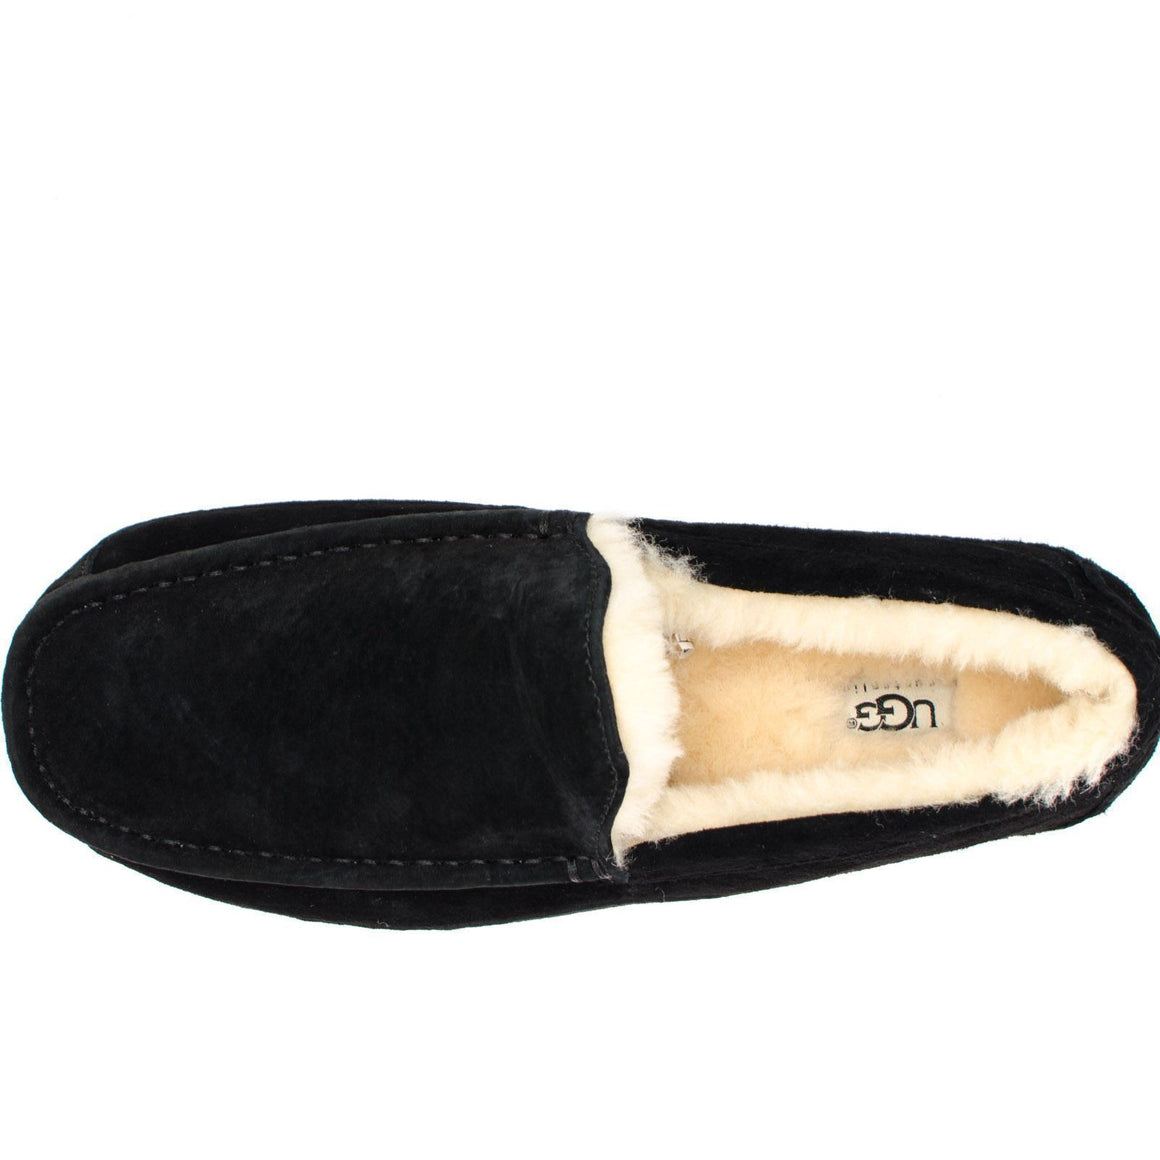 UGG Ascot Black Shoes